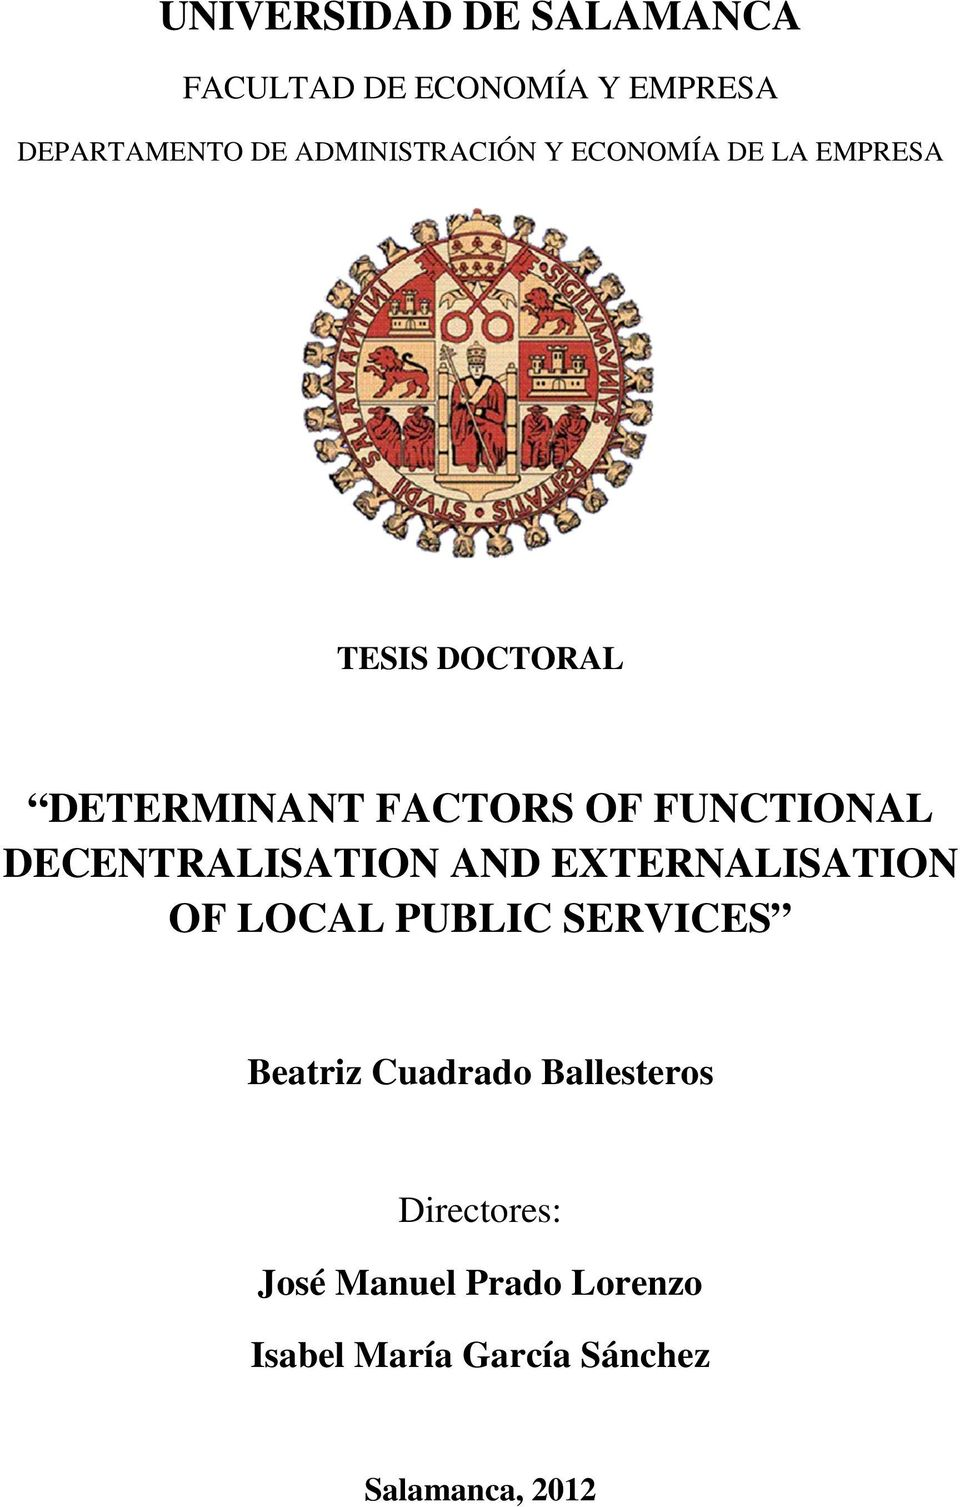 FUNCTIONAL DECENTRALISATION AND EXTERNALISATION OF LOCAL PUBLIC SERVICES Beatriz